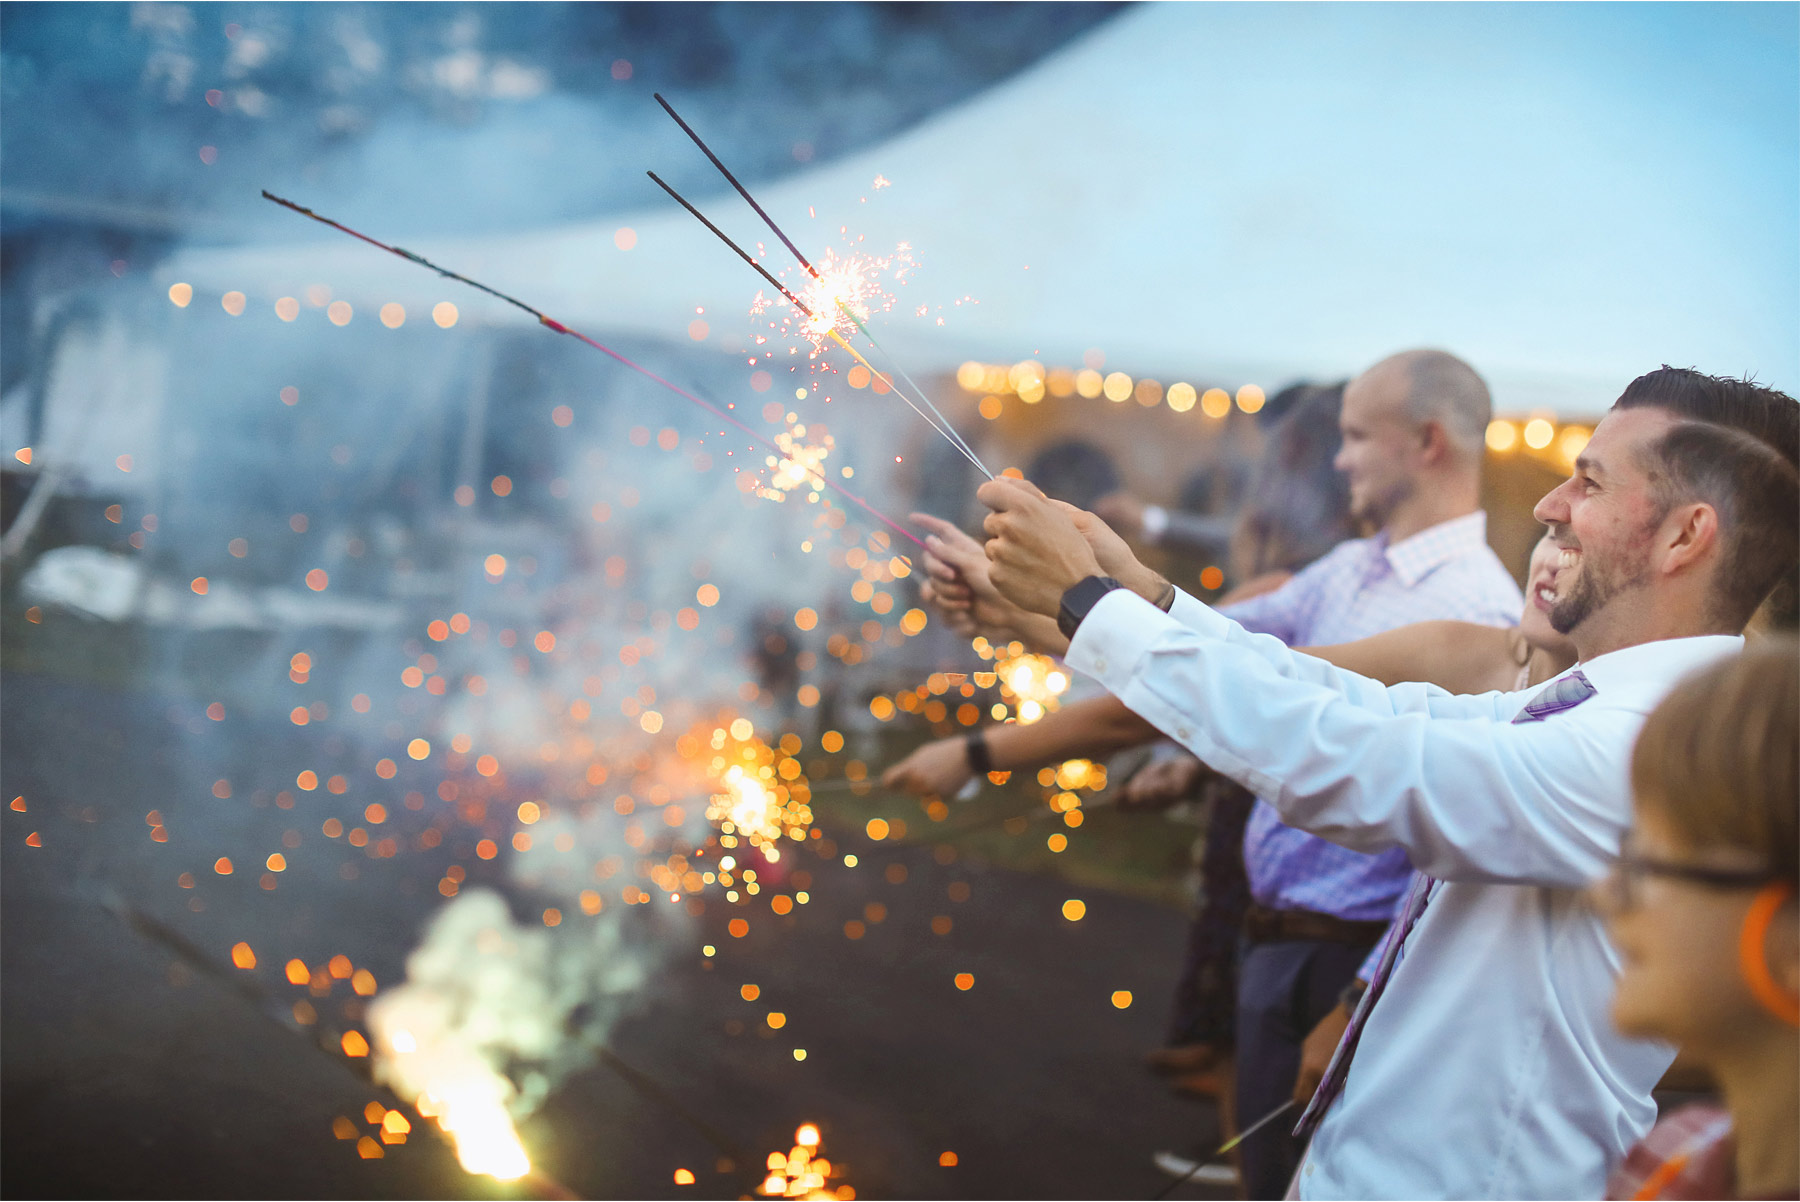 20-Ely-Minnesota-North-Wedding-by-Andrew-Vick-Photography-Sparklers-Send-Off-Katie-and-Joe.jpg